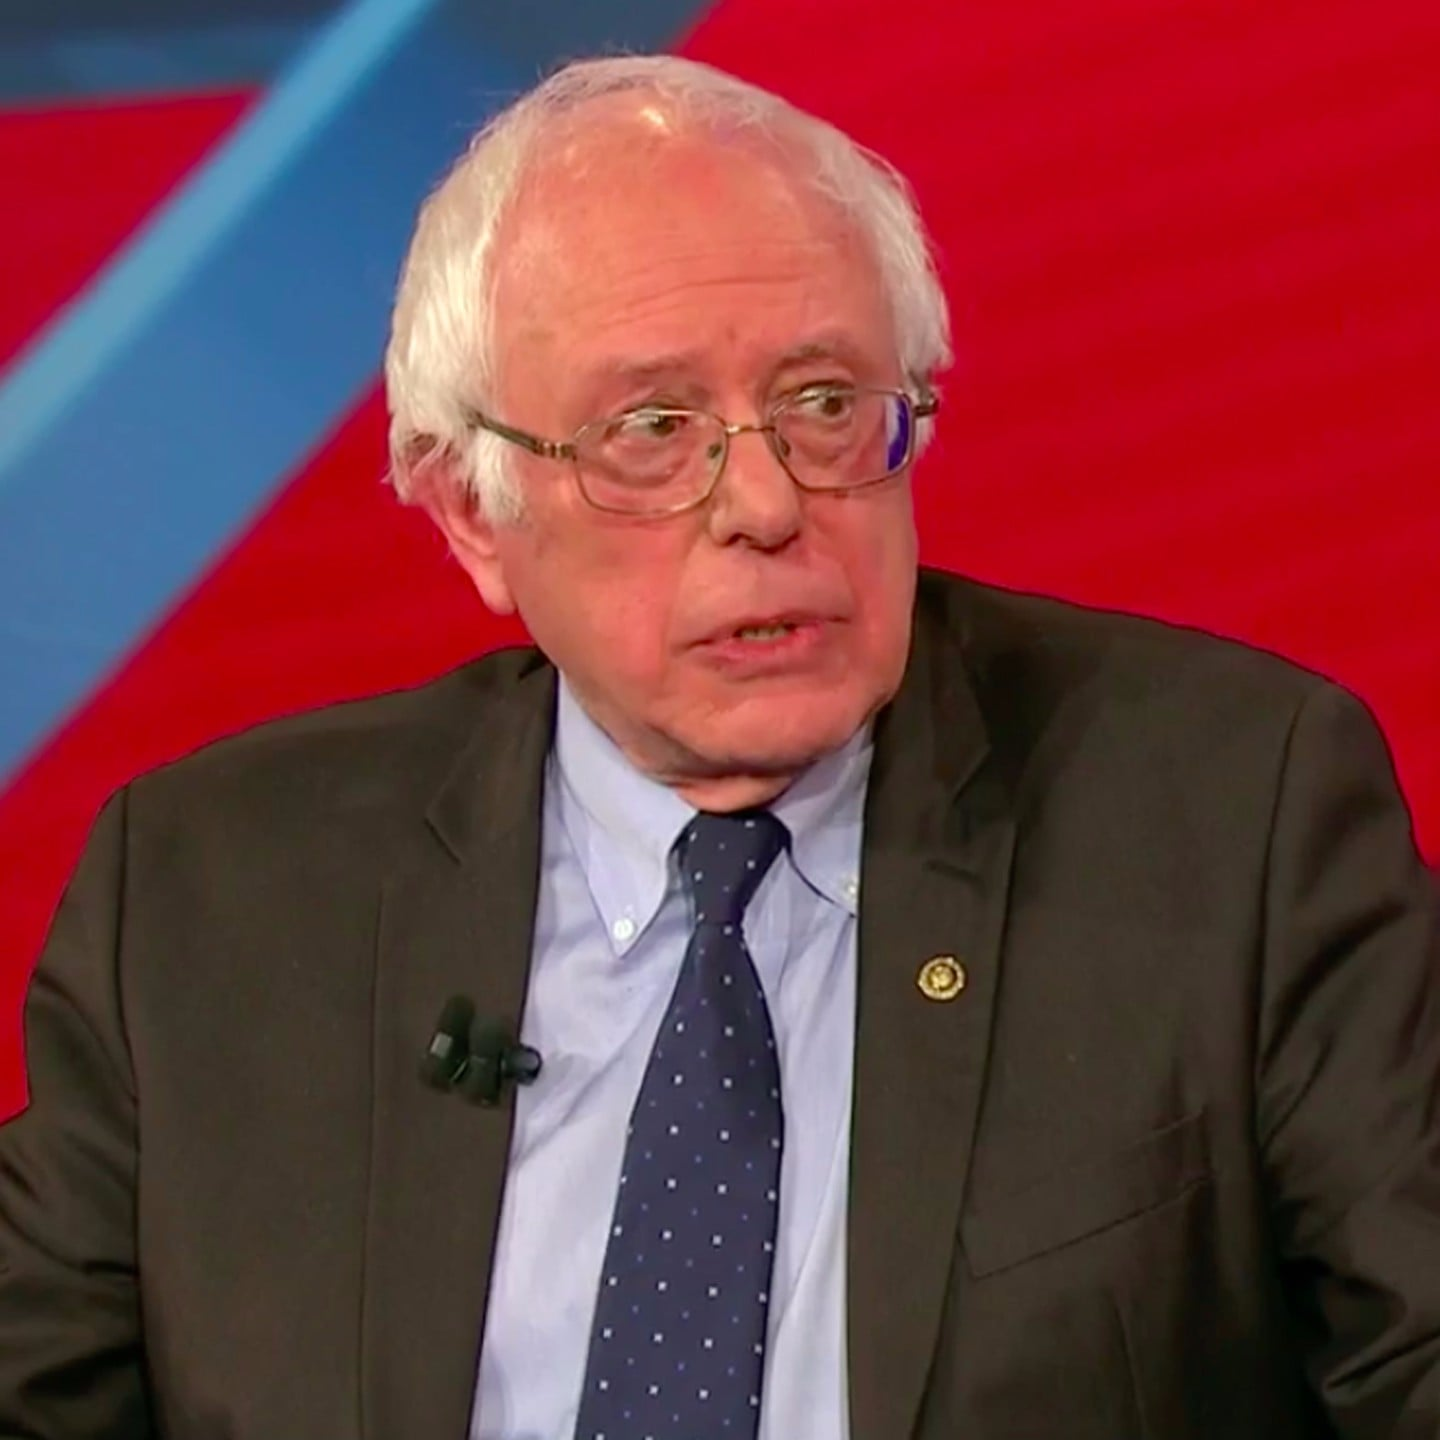 Bernie Sanders Quotes Bernie Sanders Quotes From Cnn Town Hall Meeting 2016  Popsugar News